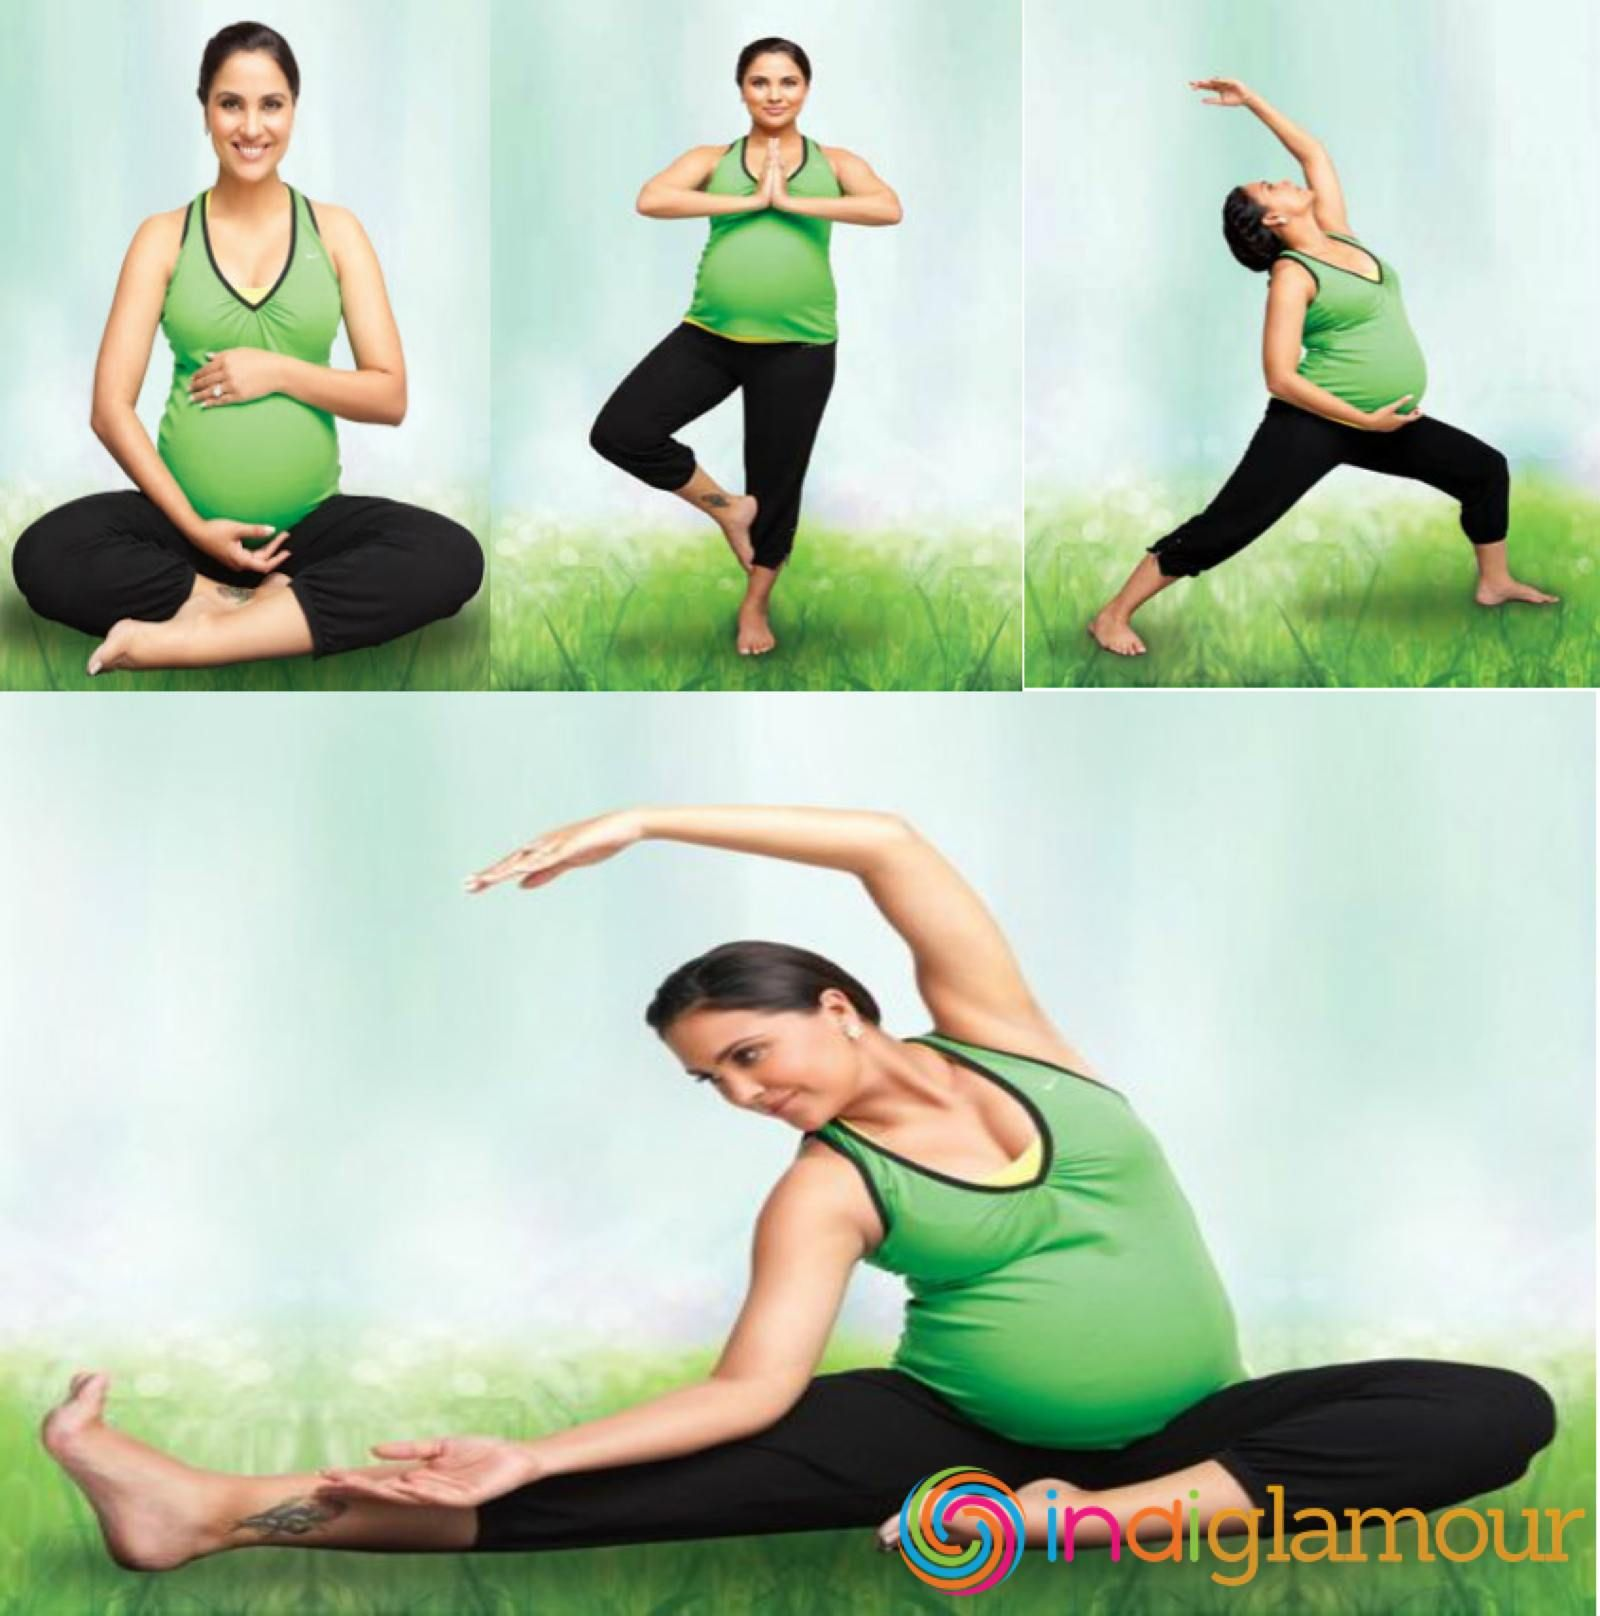 Finding New Tips That Cover Your Pregnancy Pregnancy Useful Tips Pregnancy Tips Pregnancy